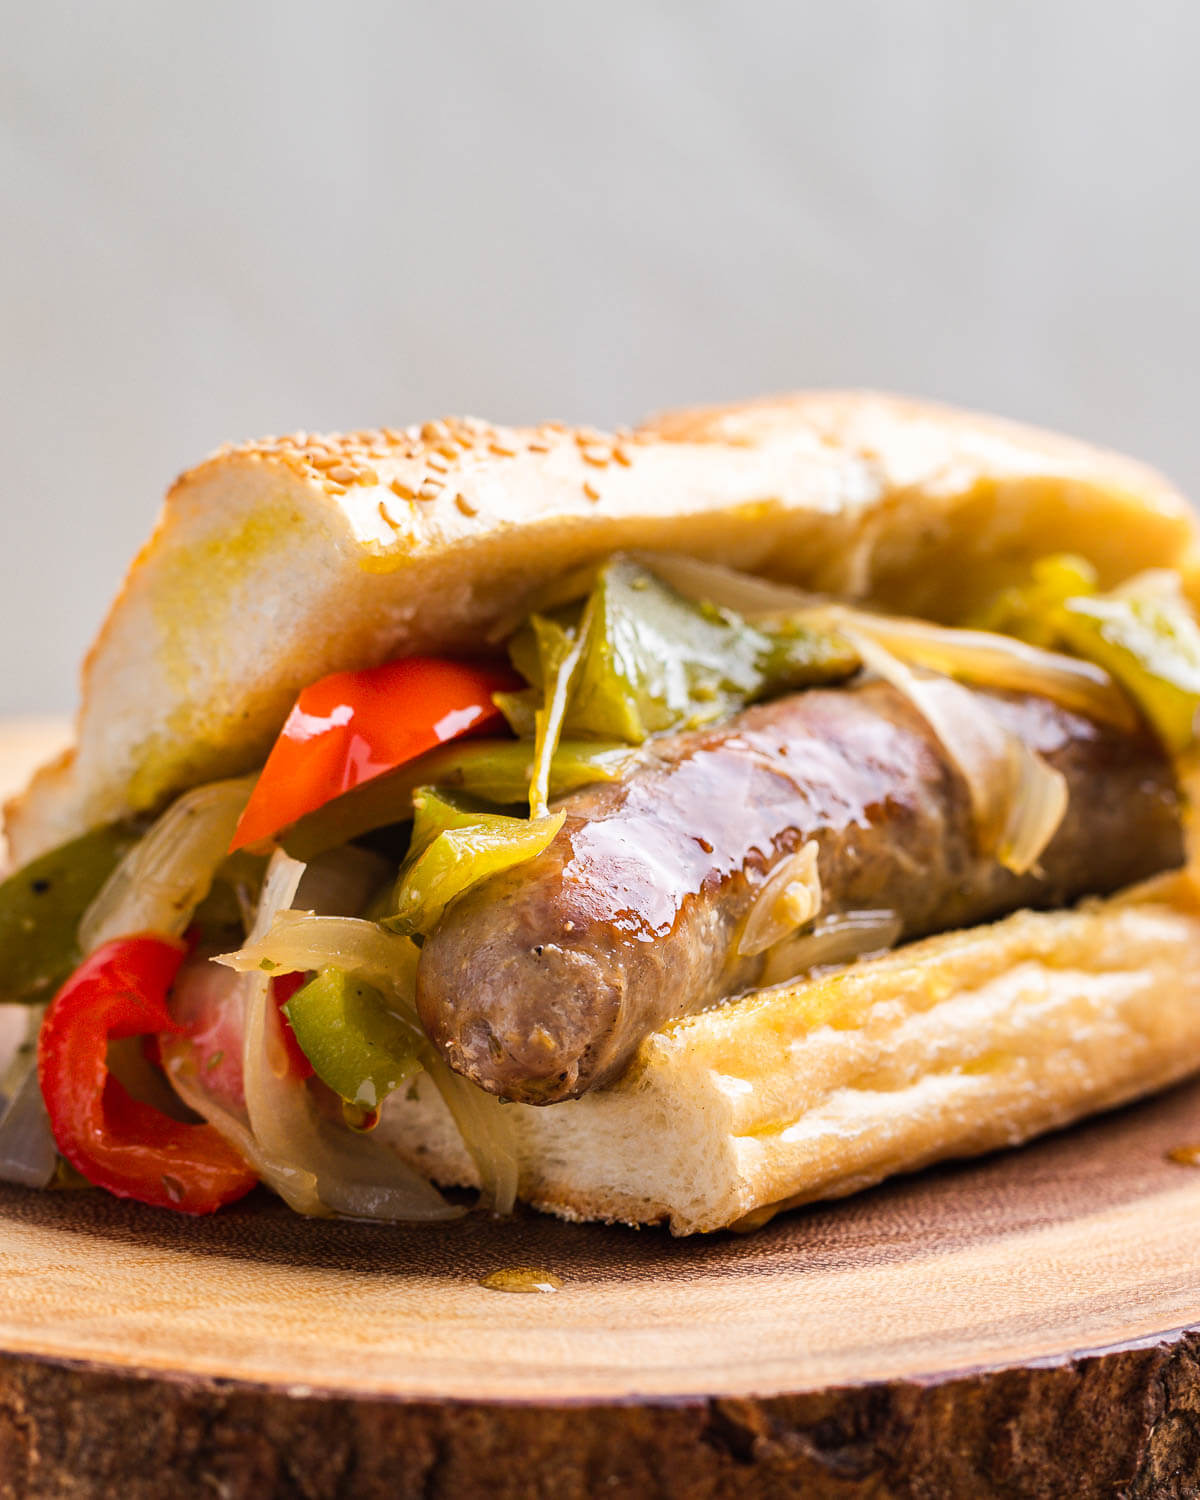 Sausage and peppers hero on wood board.